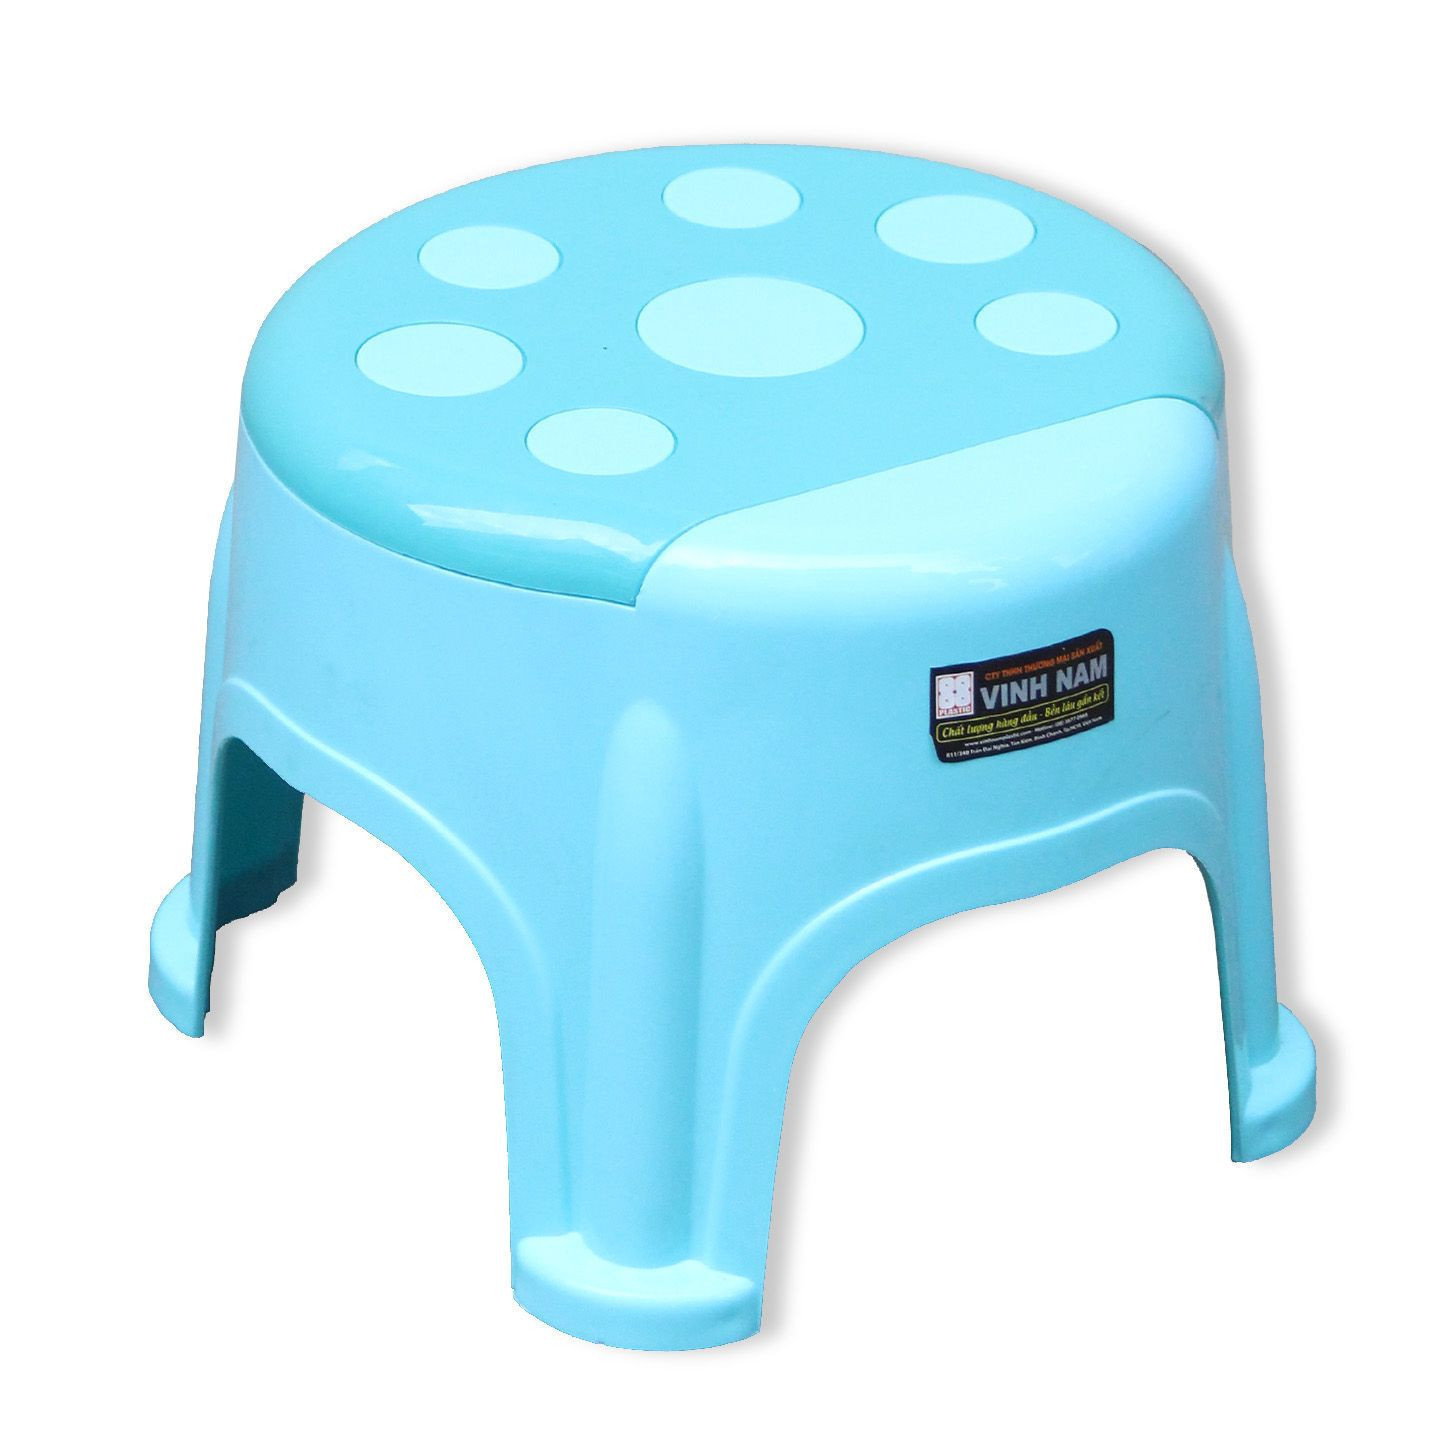 Wholesale Colorful Stool for Kids 8 inches high